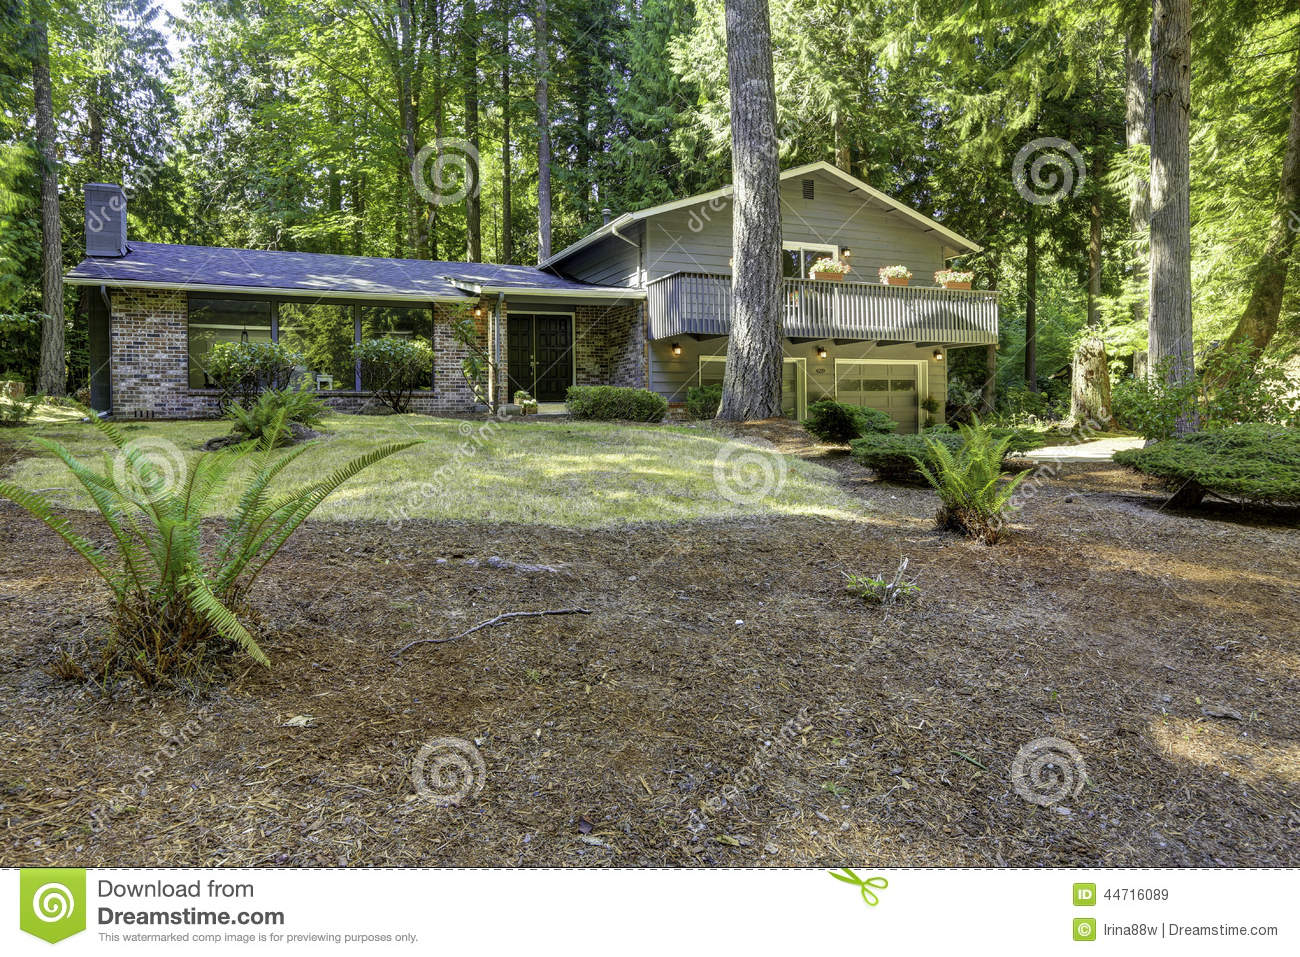 House in the woods summer time in washington state stock photo image 44716089 - The house in the woods ...